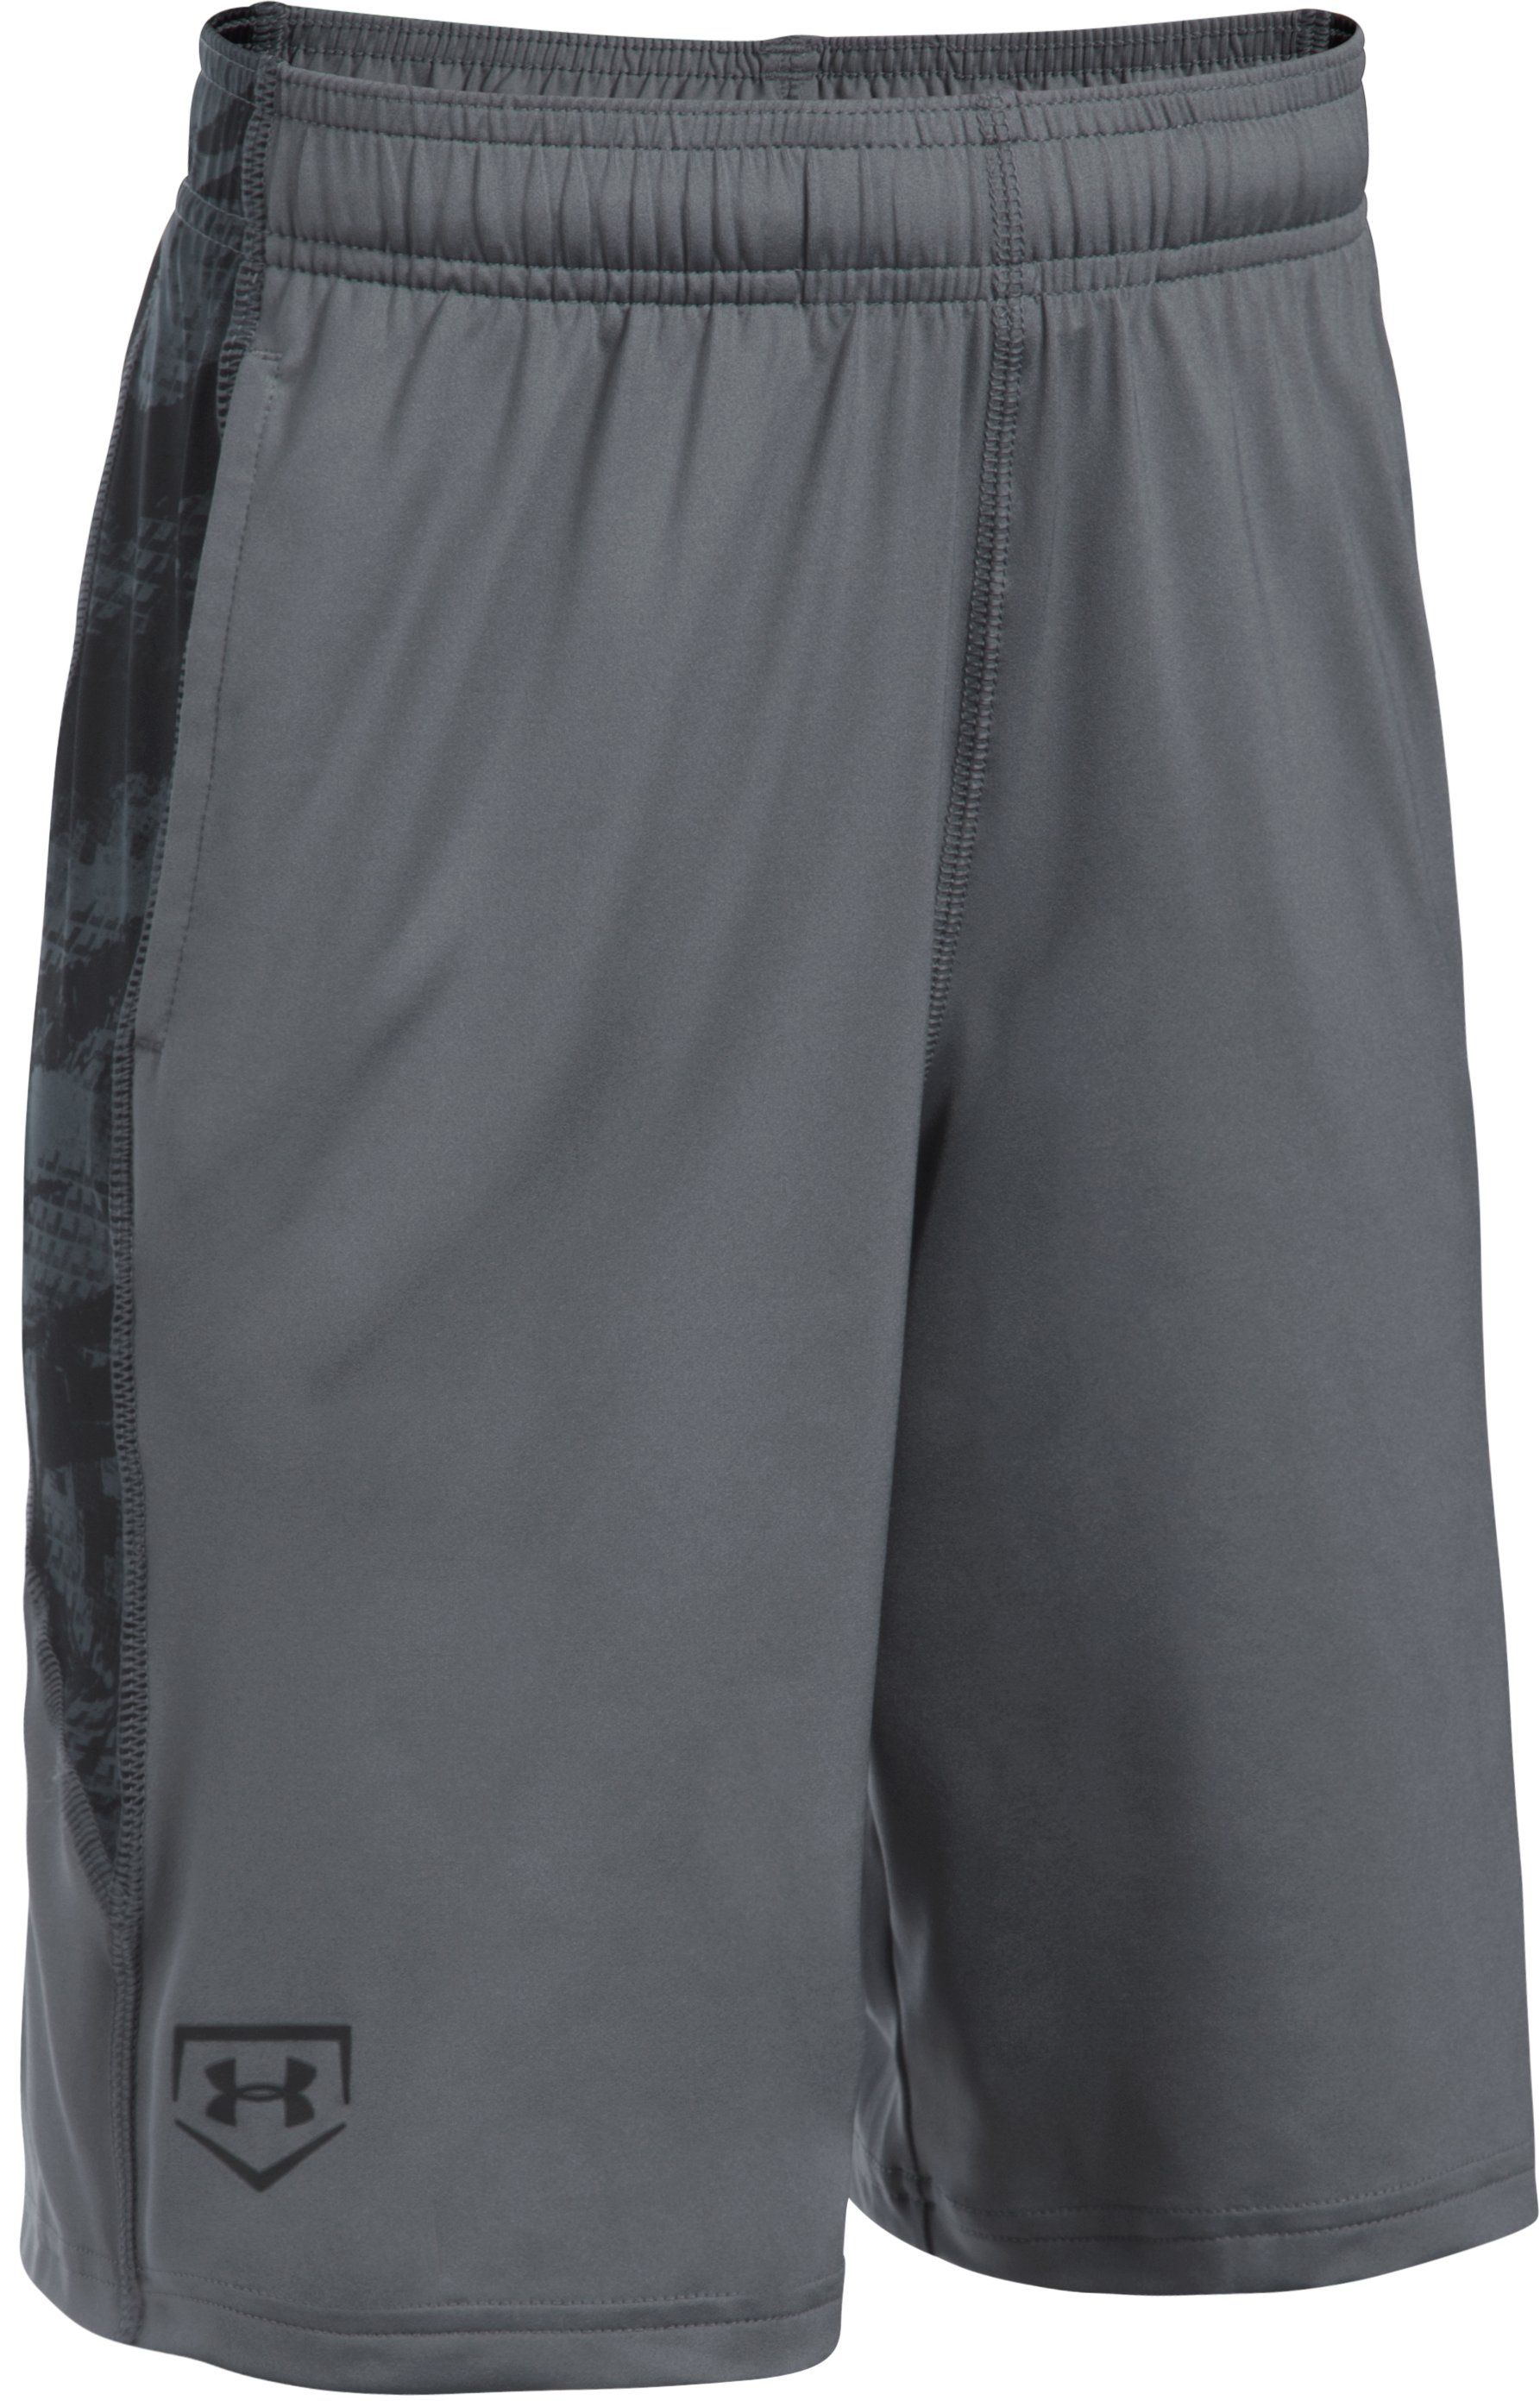 Boys' UA Baseball Shorts, Graphite